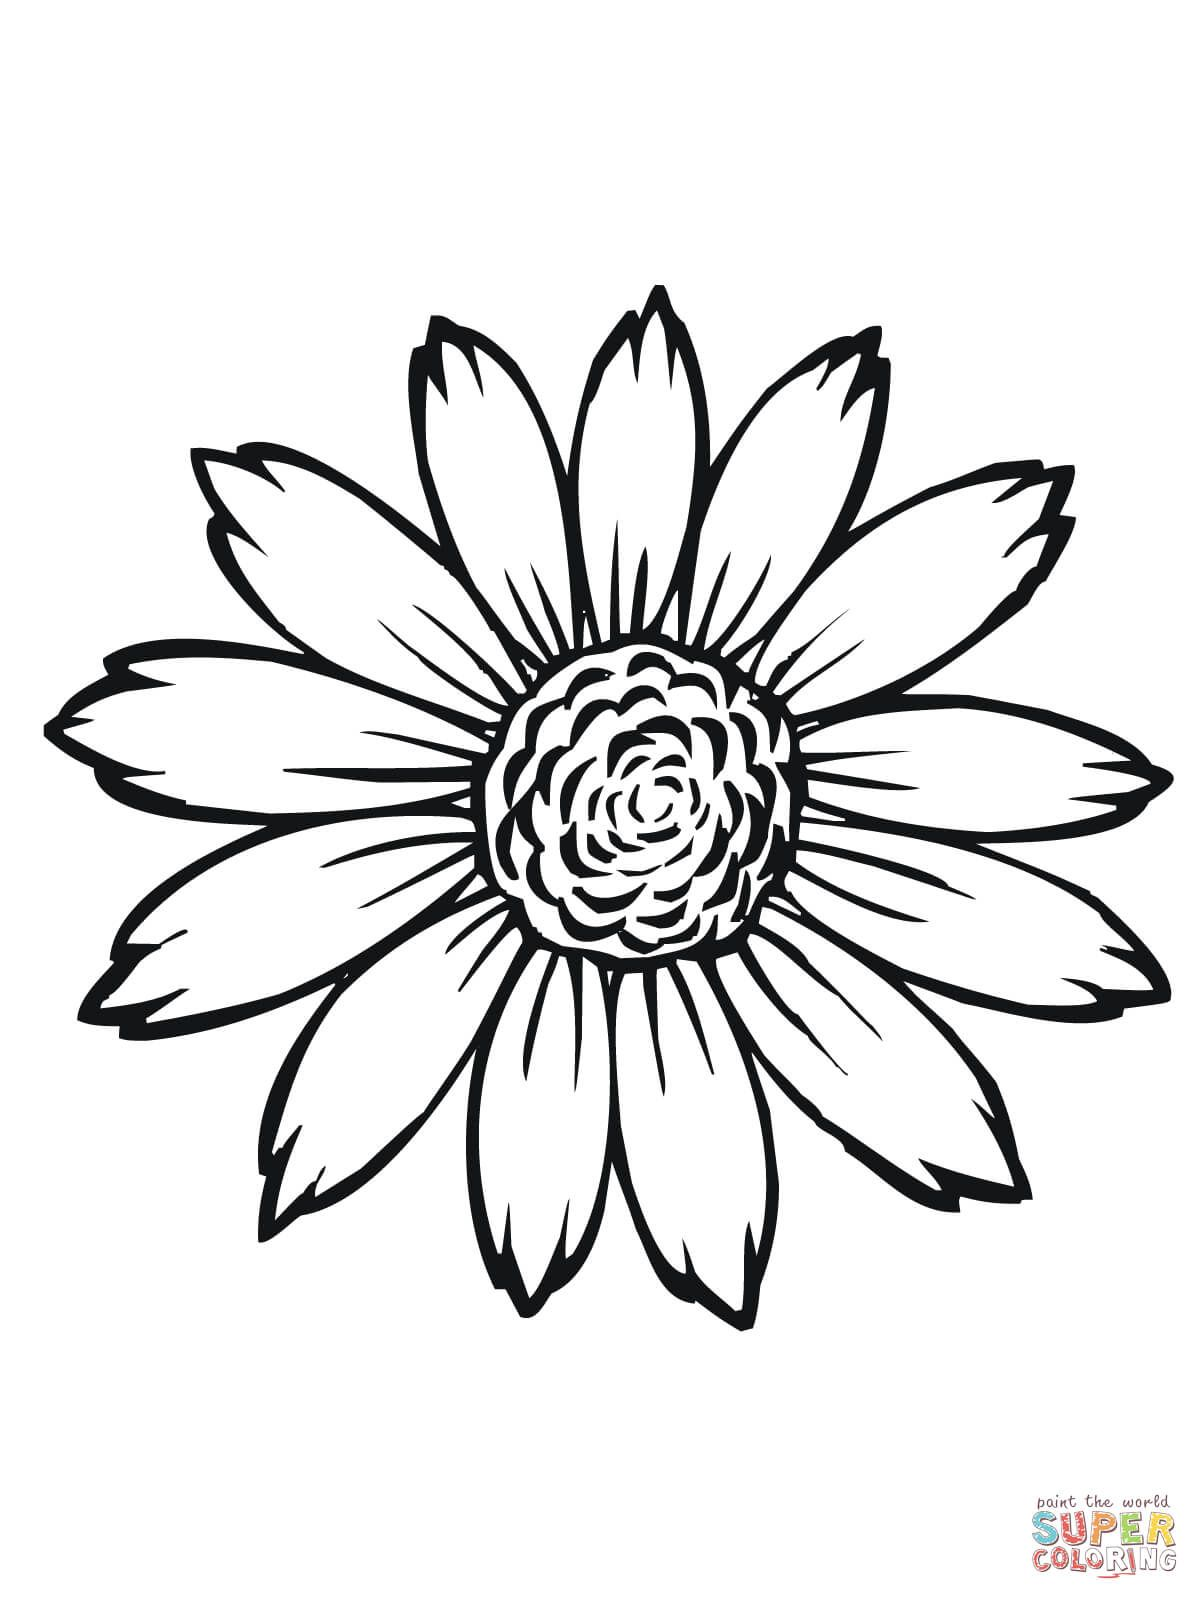 Sunflower Flower Coloring Pages Printable Wedding Stuff